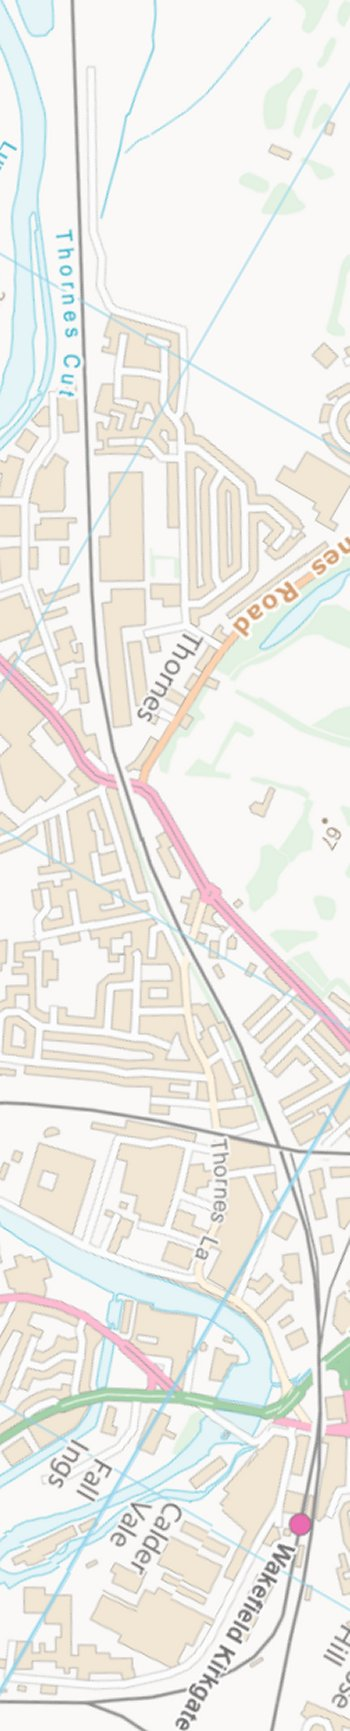 Section from Ordnance Survey OpenSource mapping 2013 showing L&YR railway line around and though Wakefield Kirkgate railway station.